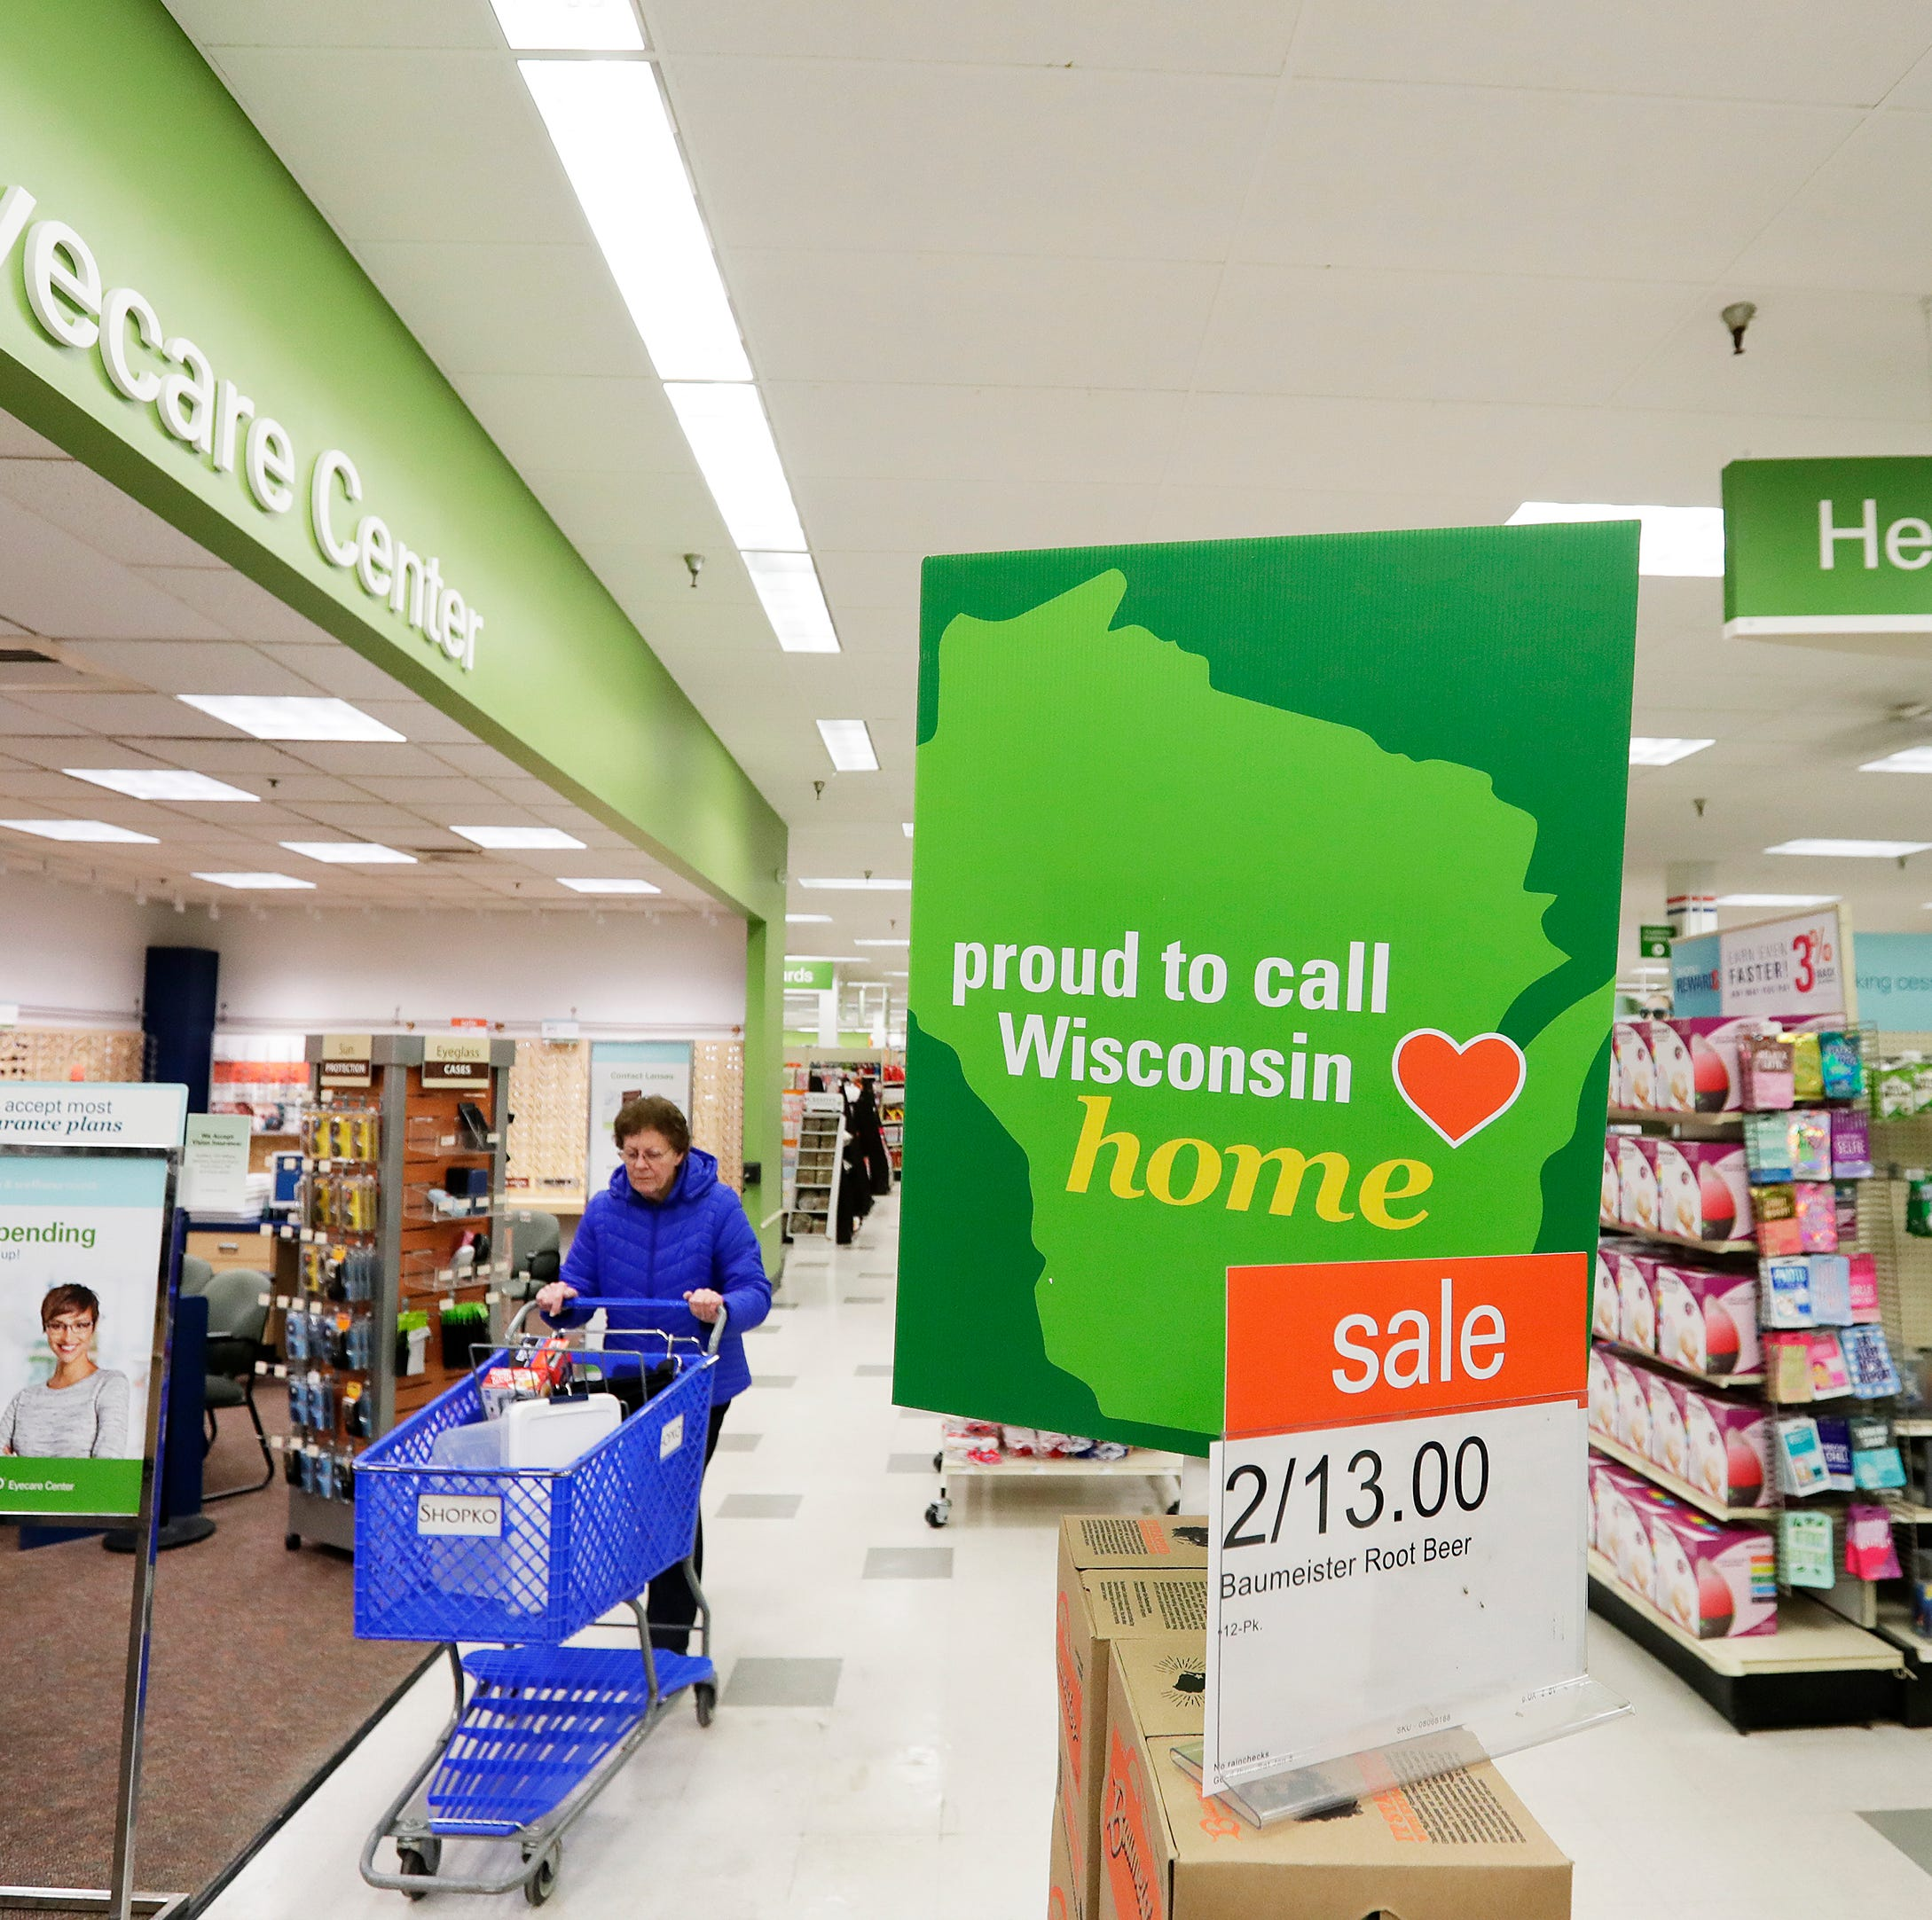 Shopko's liquidation will mean the end of its charitable foundation